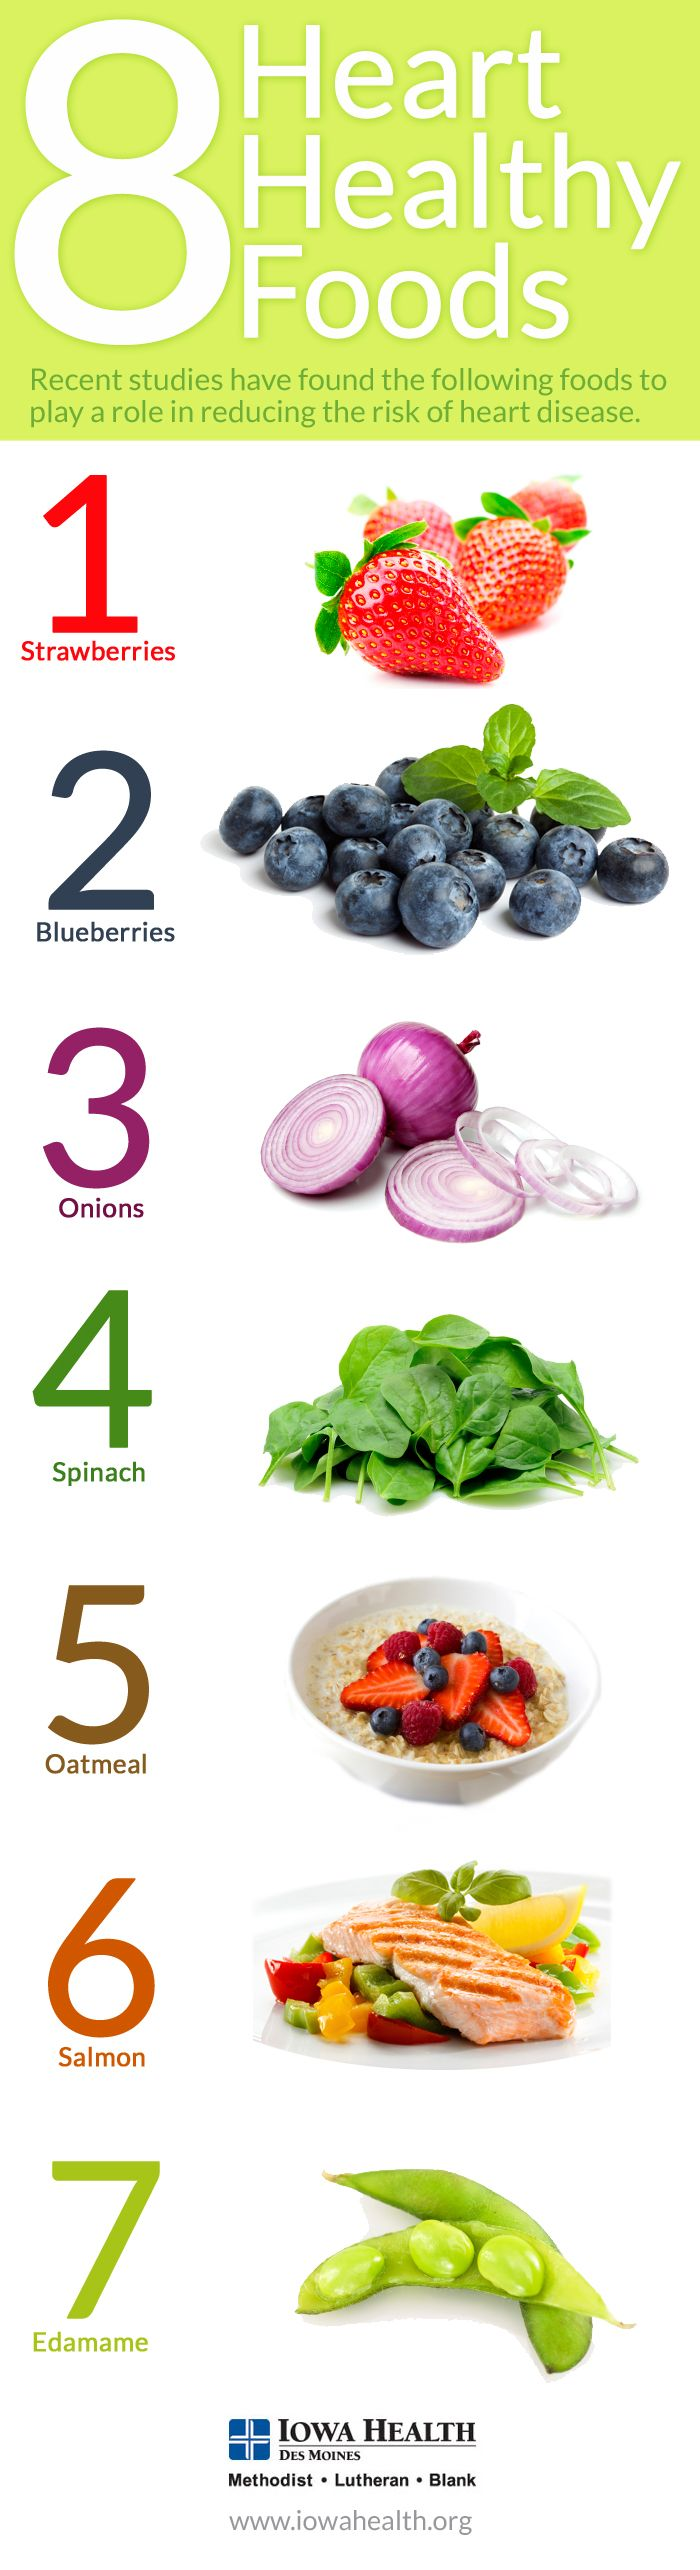 Recent studies have found these eight heart healthy foods to play a role in reducing the risk of heart disease.